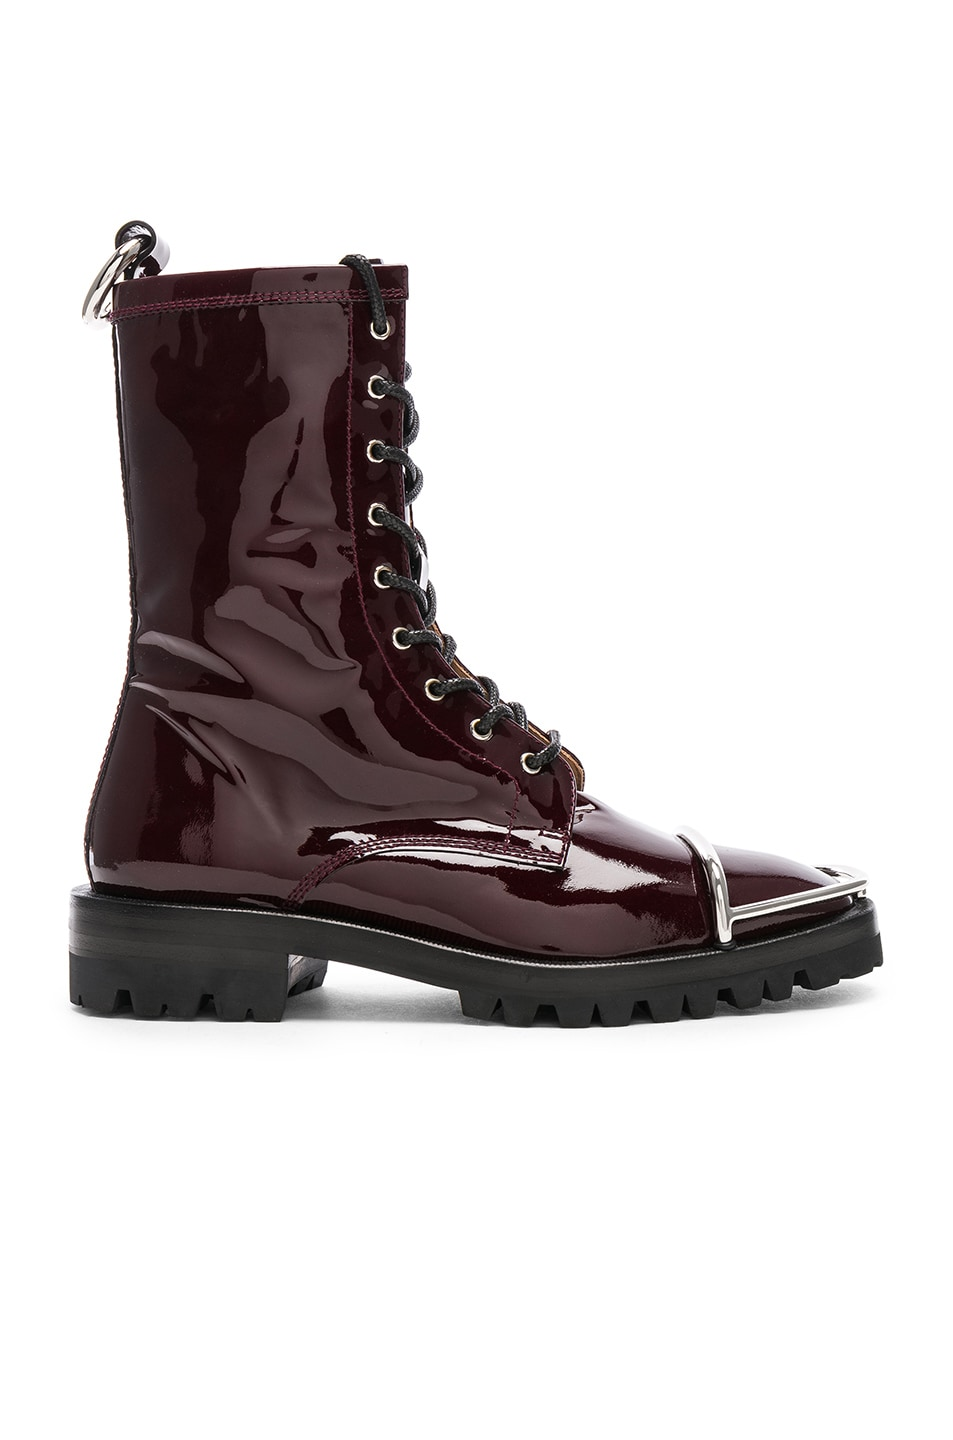 Image 1 of Alexander Wang Kennah Patent Boot in Oxblood